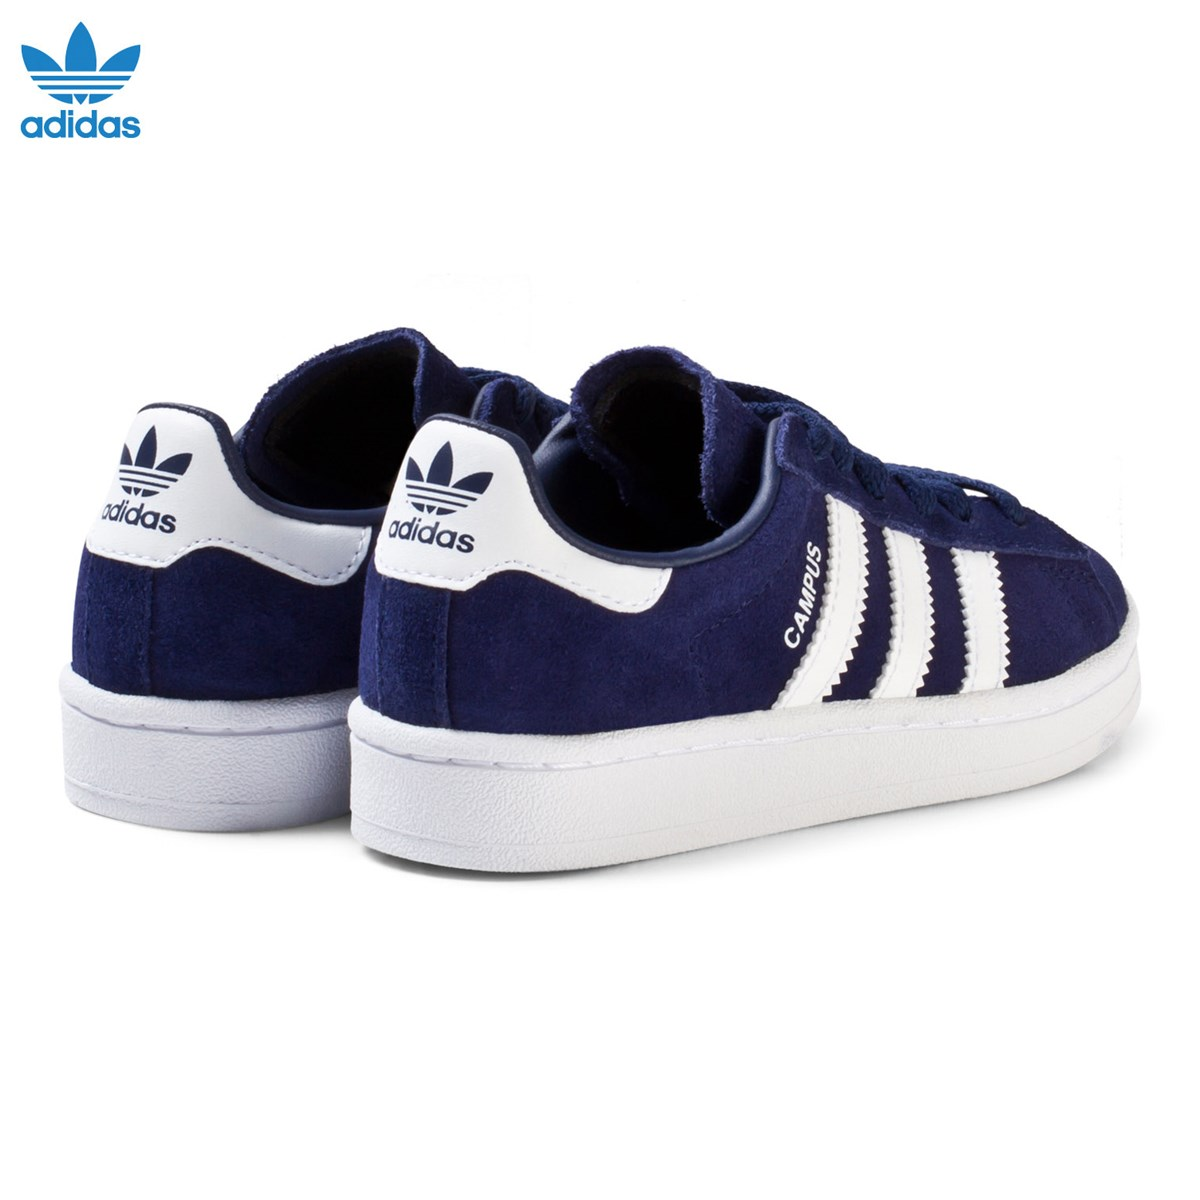 finest selection e1745 18202 ... authentic adidas originals navy kids campus trainers babyshop.dk aeb4c  e8b3c